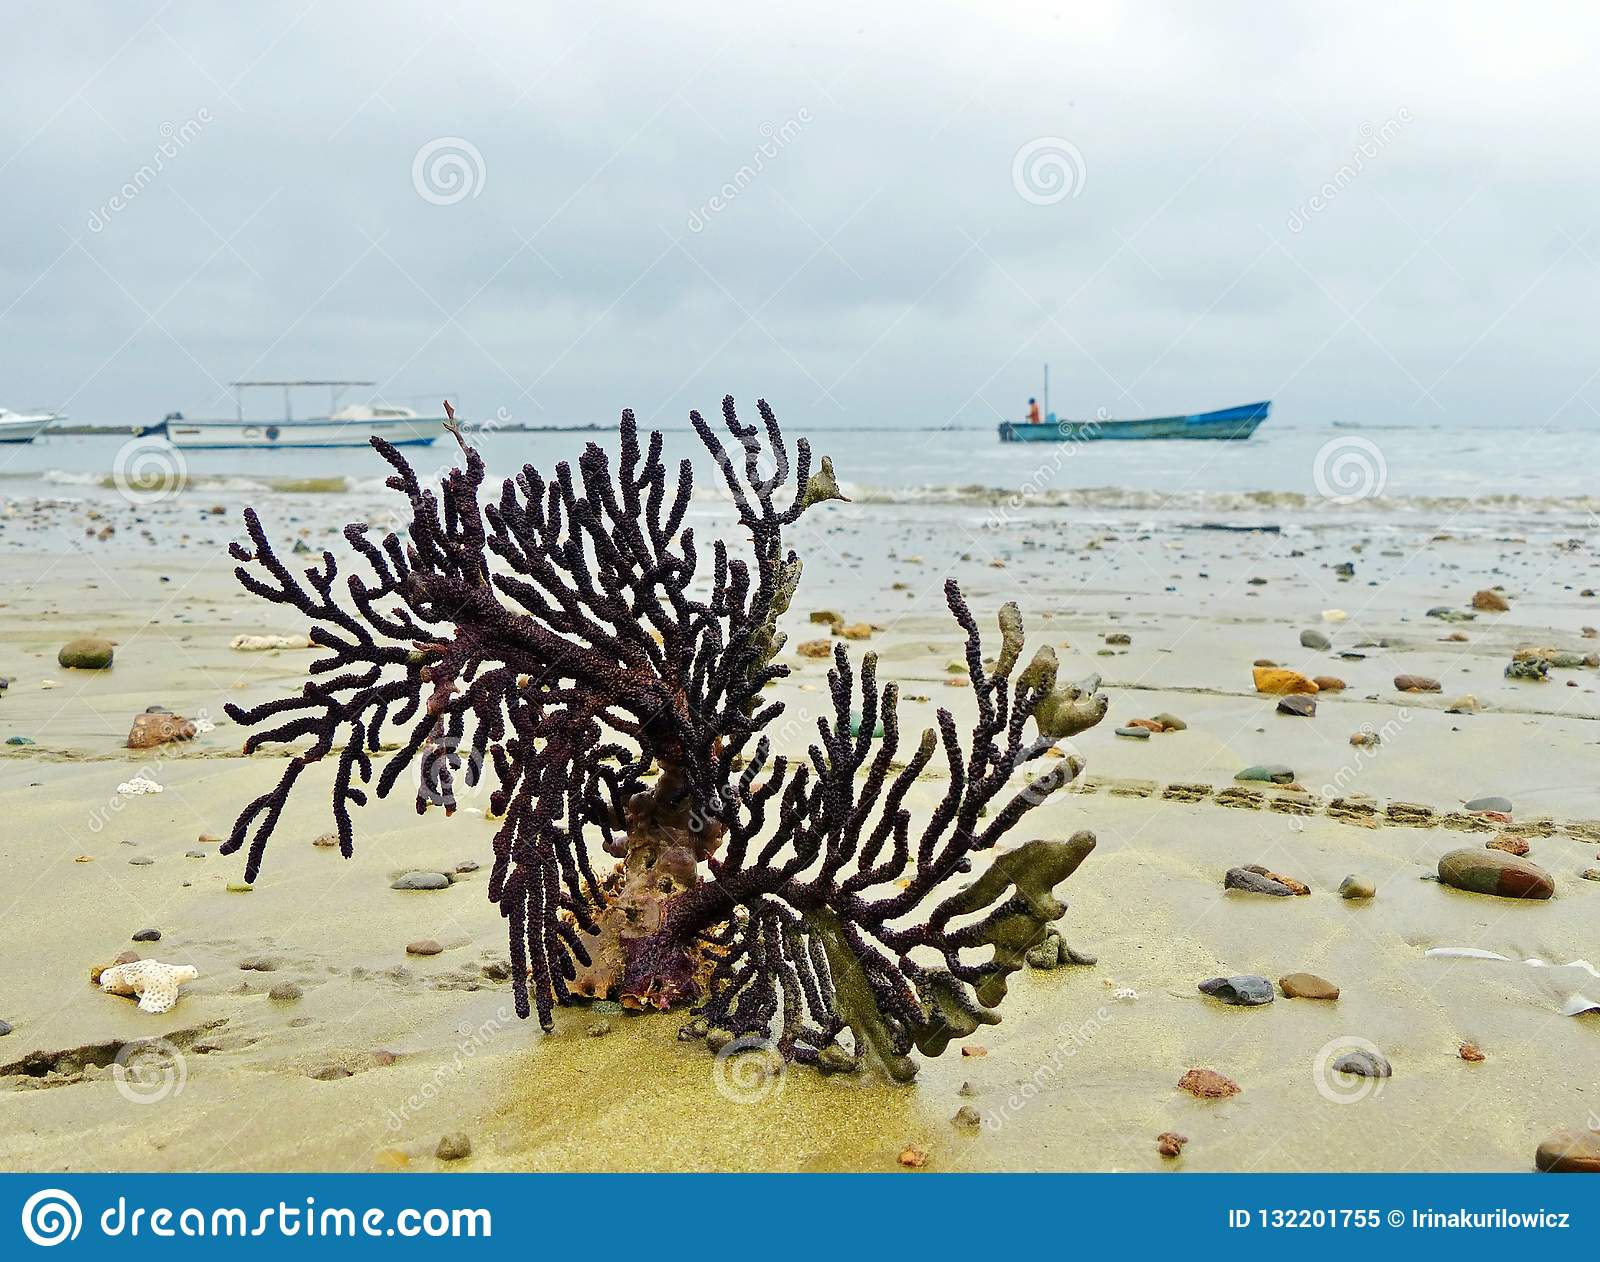 The coral on the sandy shore